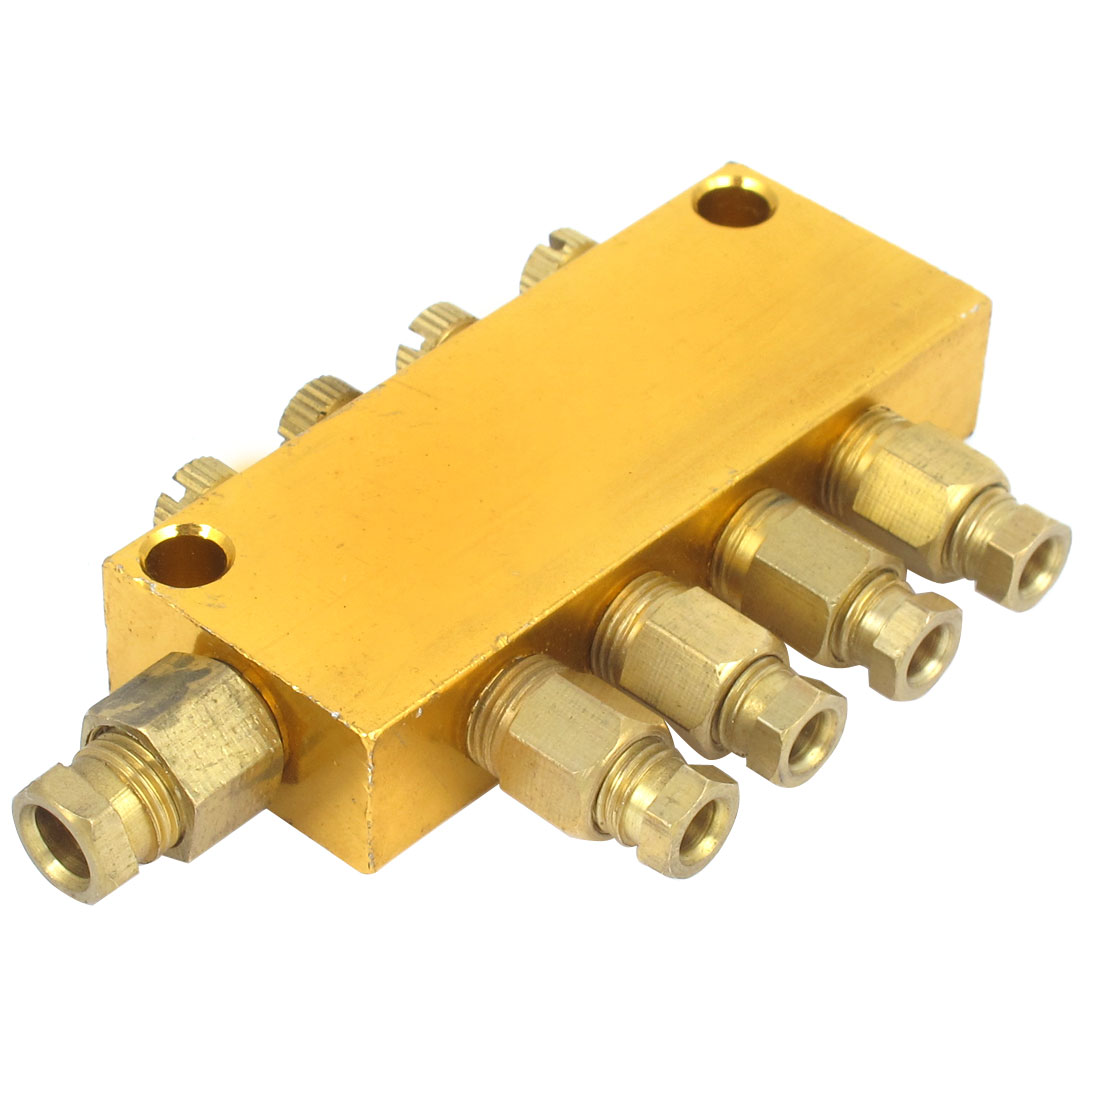 Air Pneumatic Brass Adjustable 1-Inlet 4-Outlet Hydraulic Oil Distributor Regulating Manifold Block